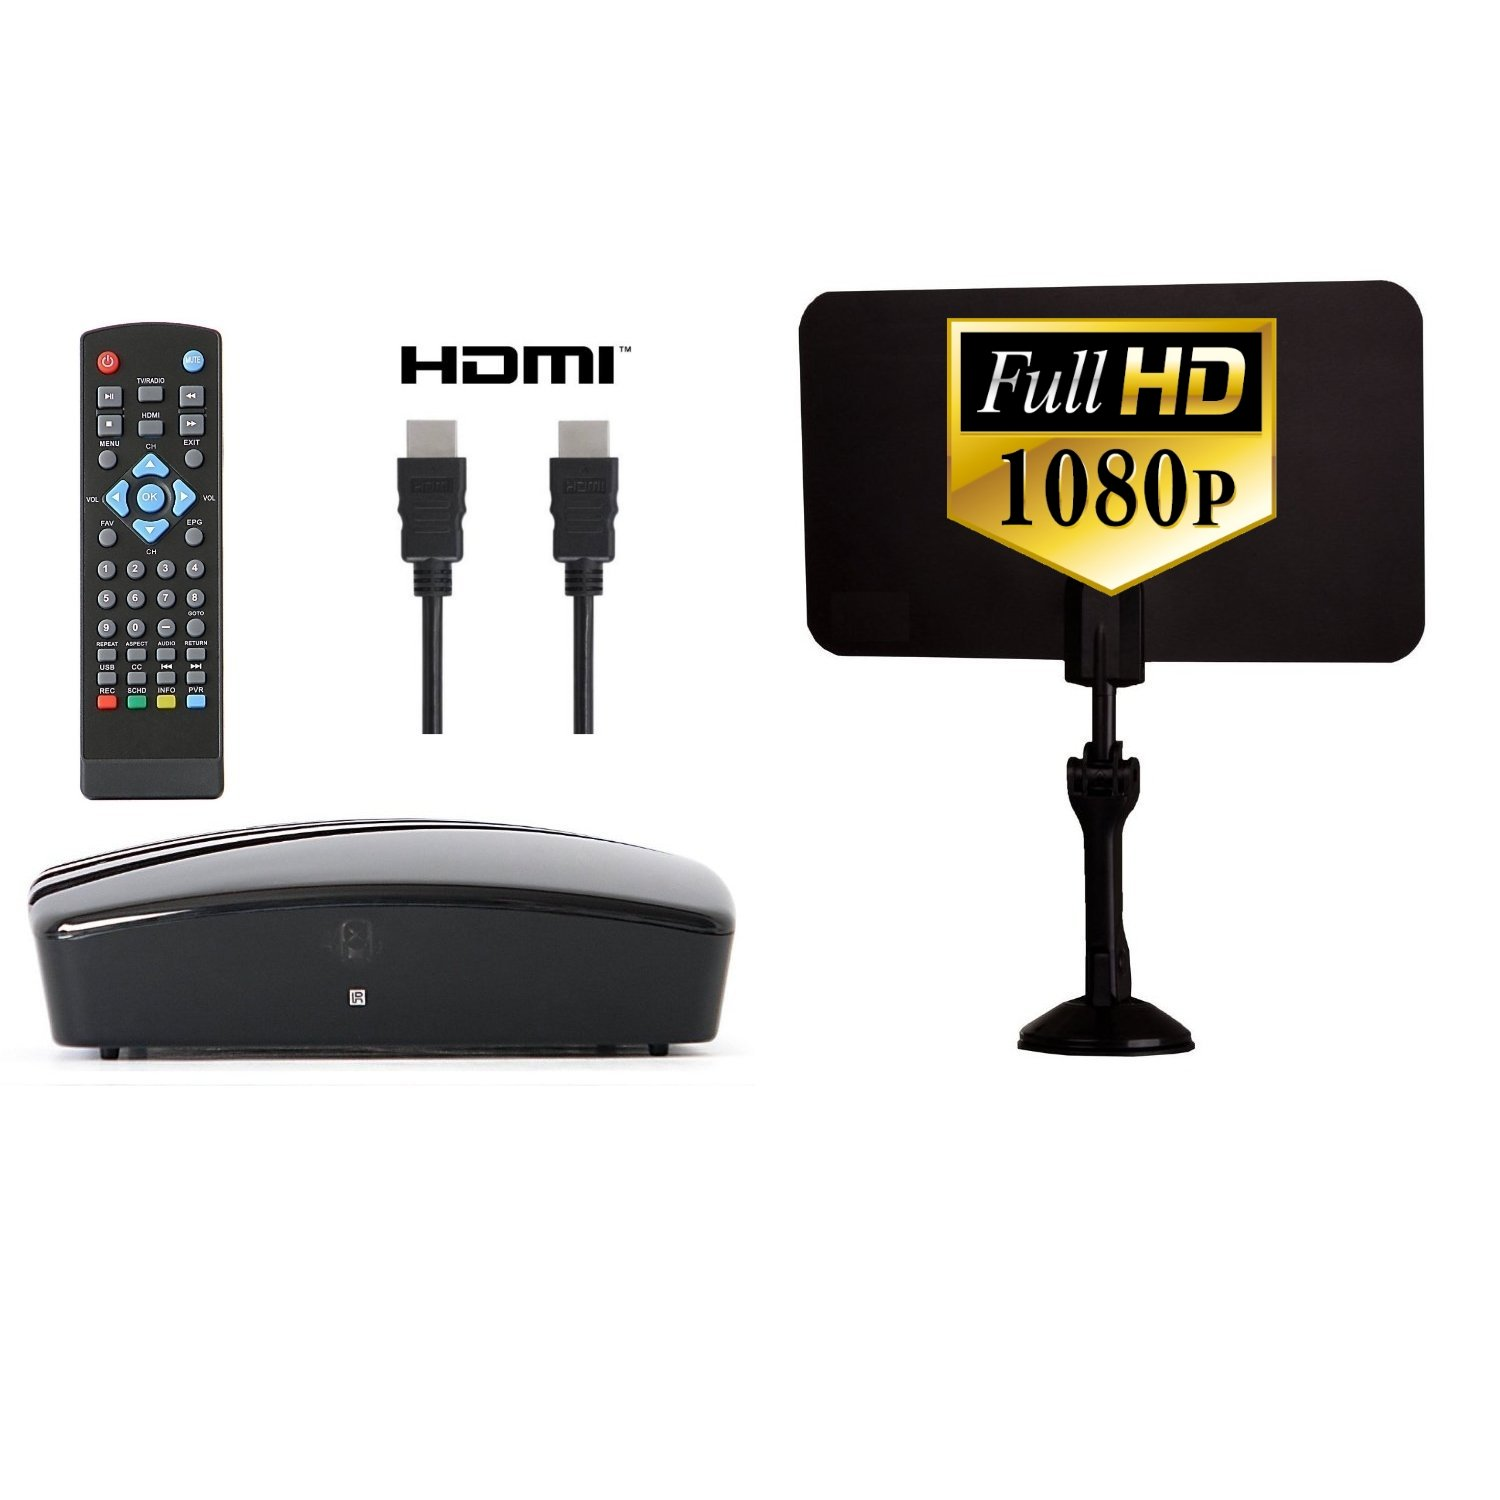 Digital Converter Box + Digital Antenna + HDMI and RCA Cable - Complete Bundle to View and Record HD Channels For FREE (Instant or Scheduled Recording, 1080P HDTV, HDMI Output And 7 Day Program Guide) by eXuby